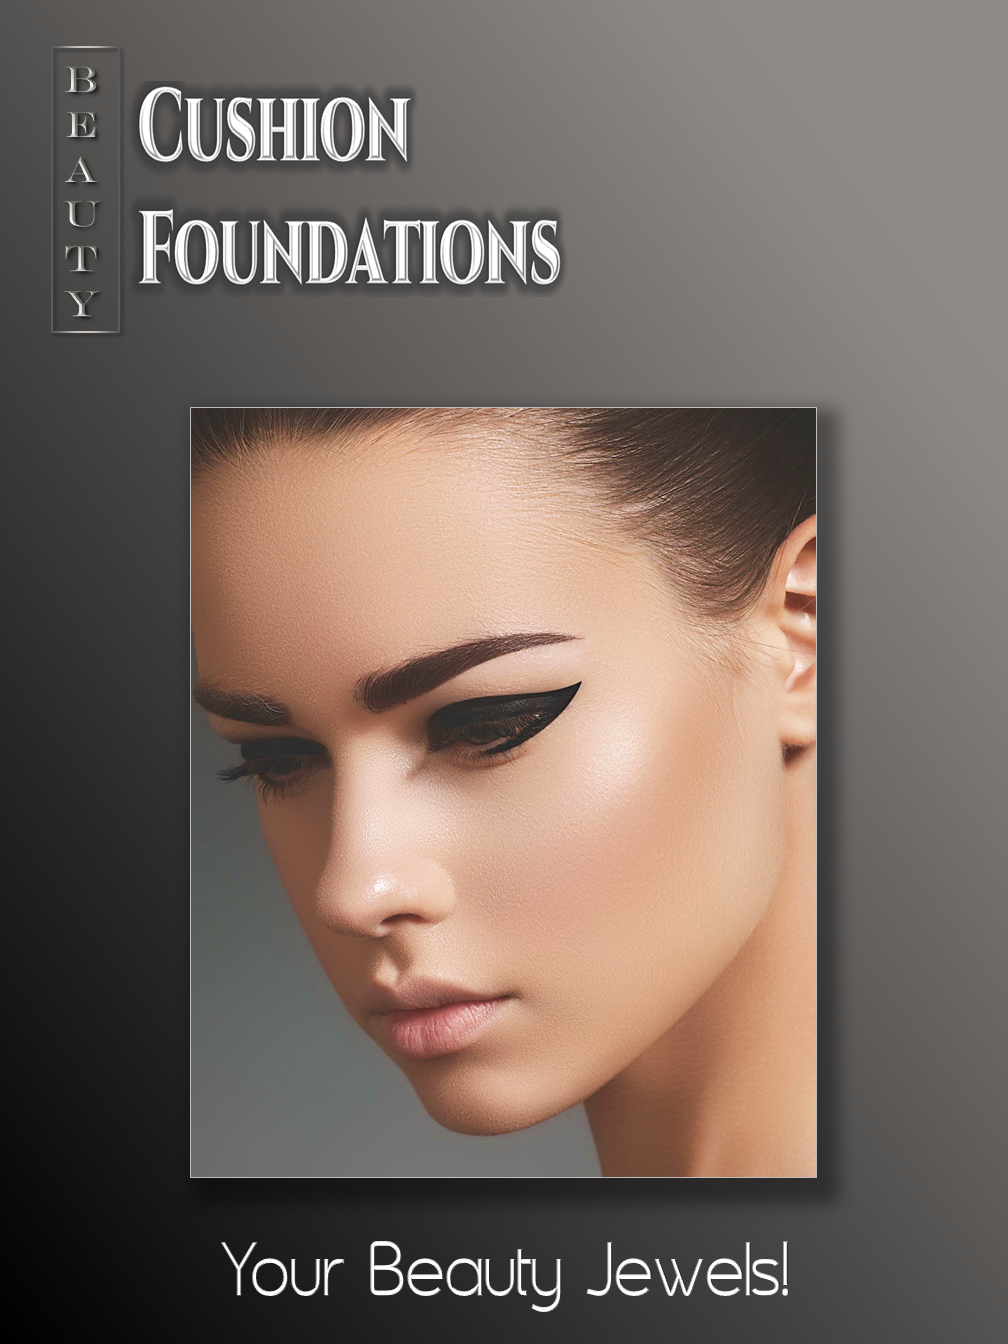 #Foundations